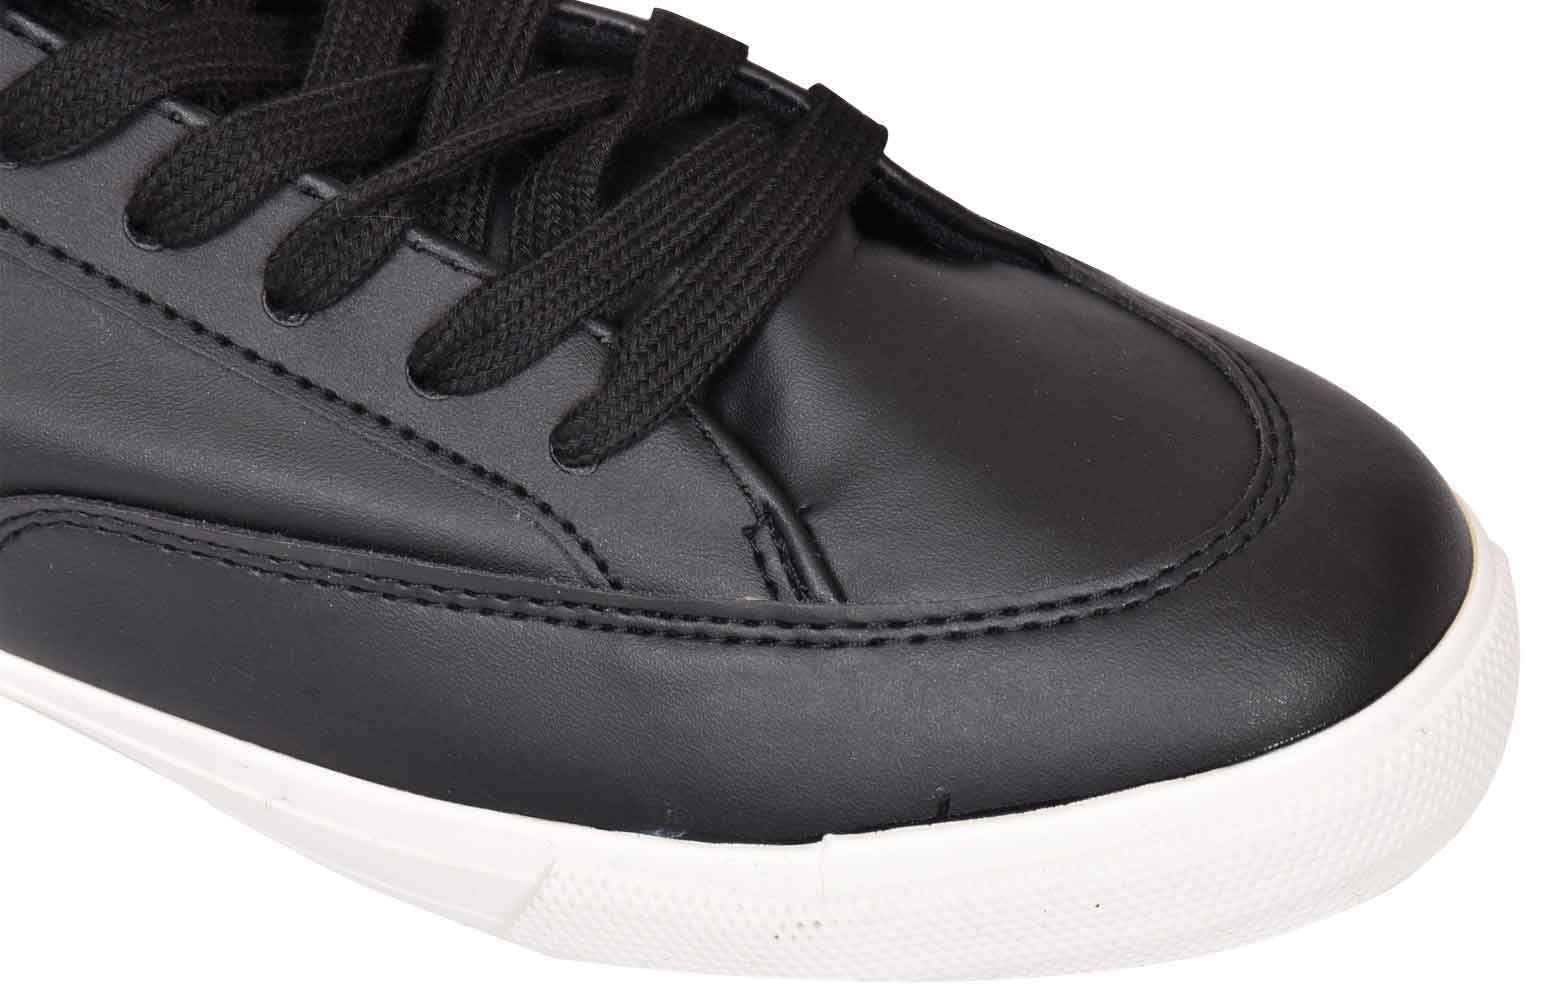 Loyalty-amp-Faith-Mens-Trainers-Sneakers-Lace-up-Running-Walking-Gym-Casual-Shoes miniatuur 20